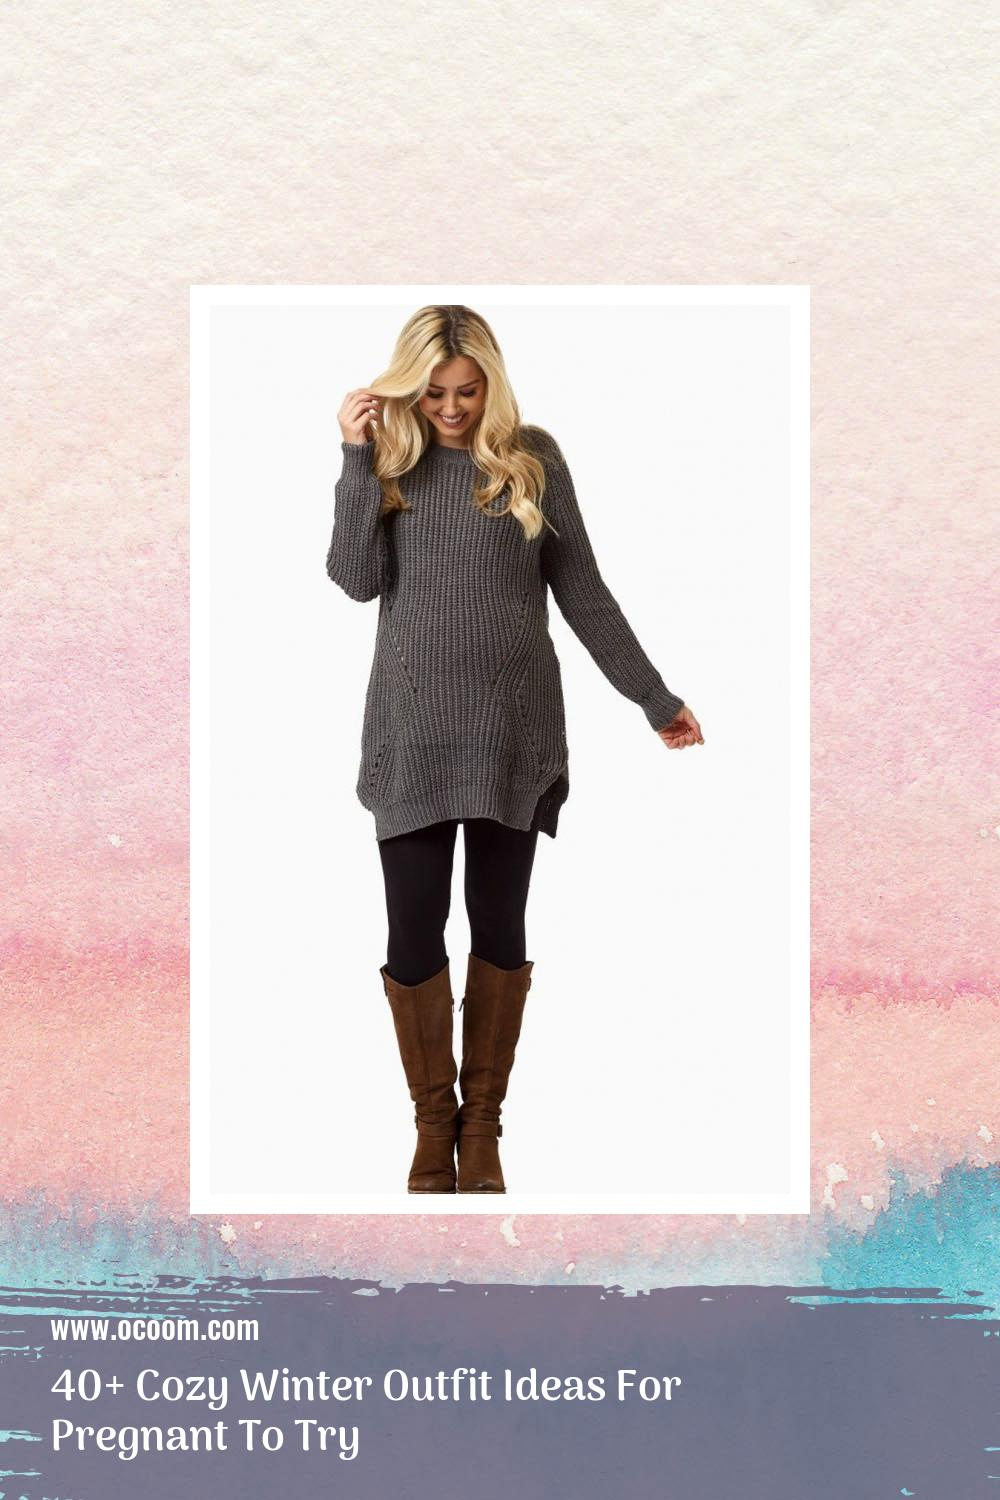 40+ Cozy Winter Outfit Ideas For Pregnant To Try 32